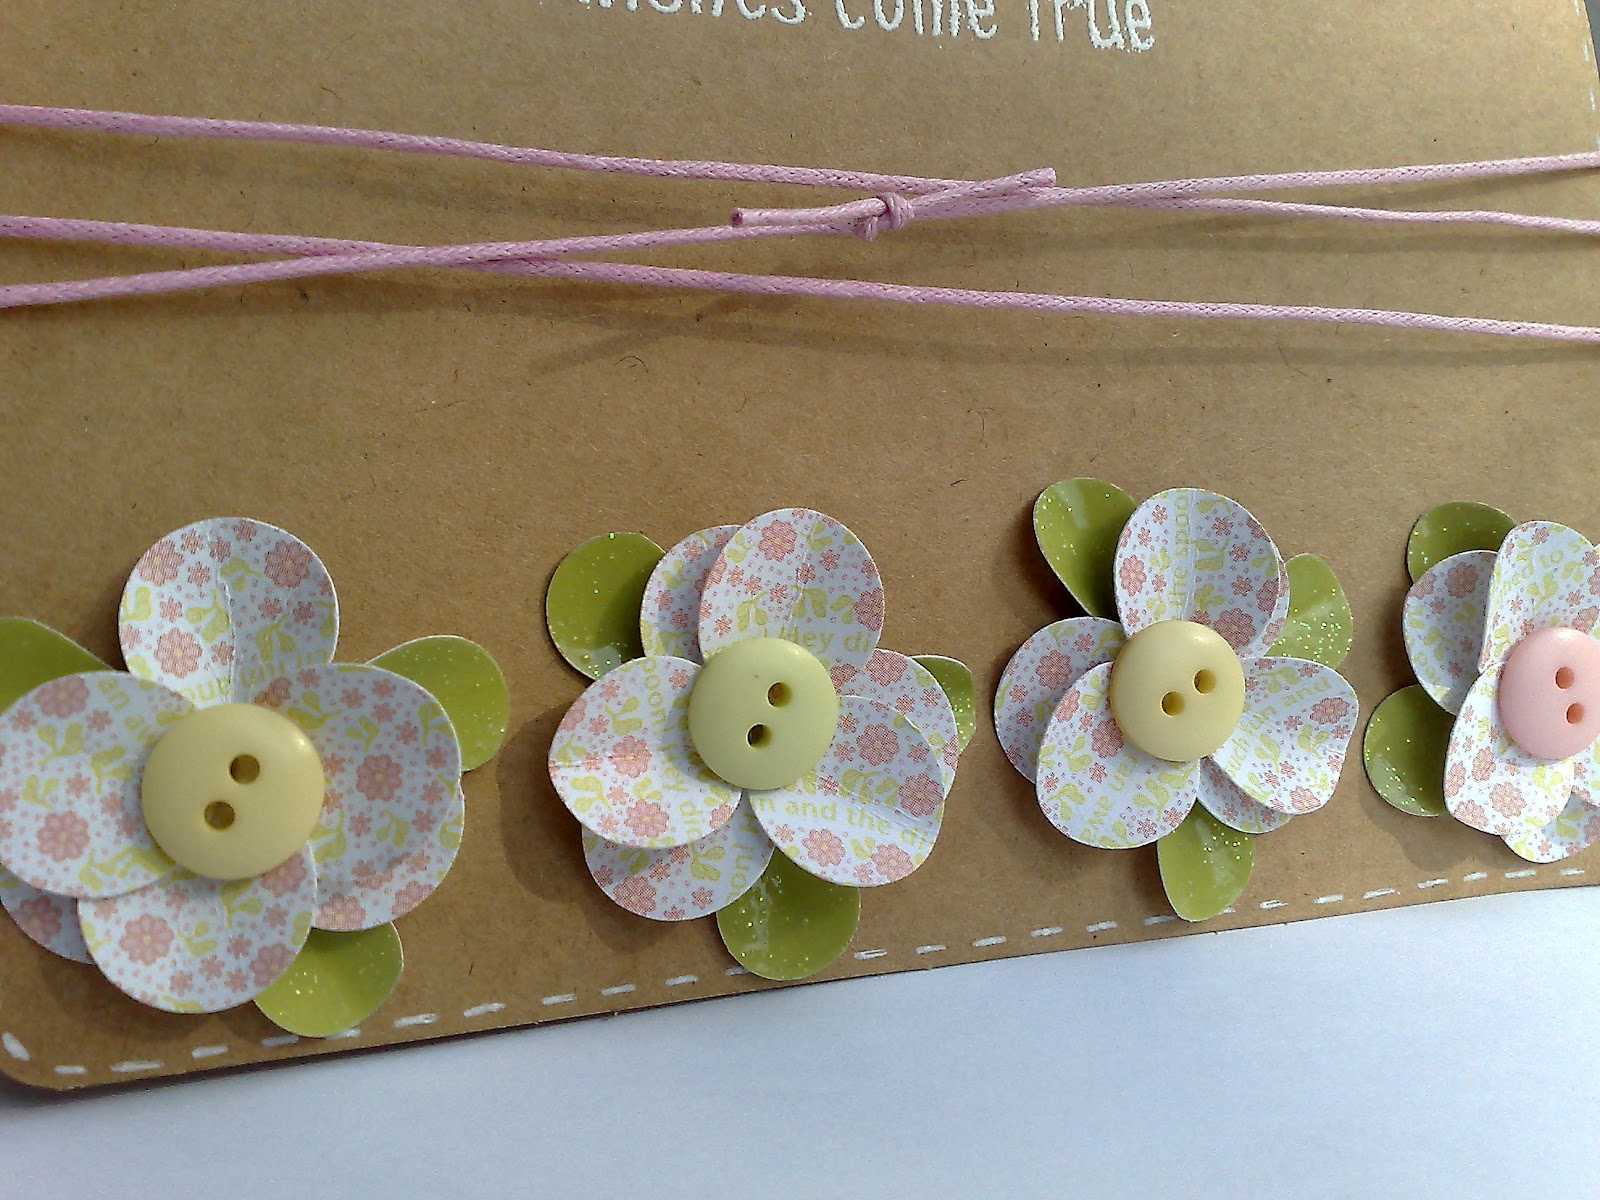 Paper Craft Tales: Paper Punch Flowers - May ALL your wishes come